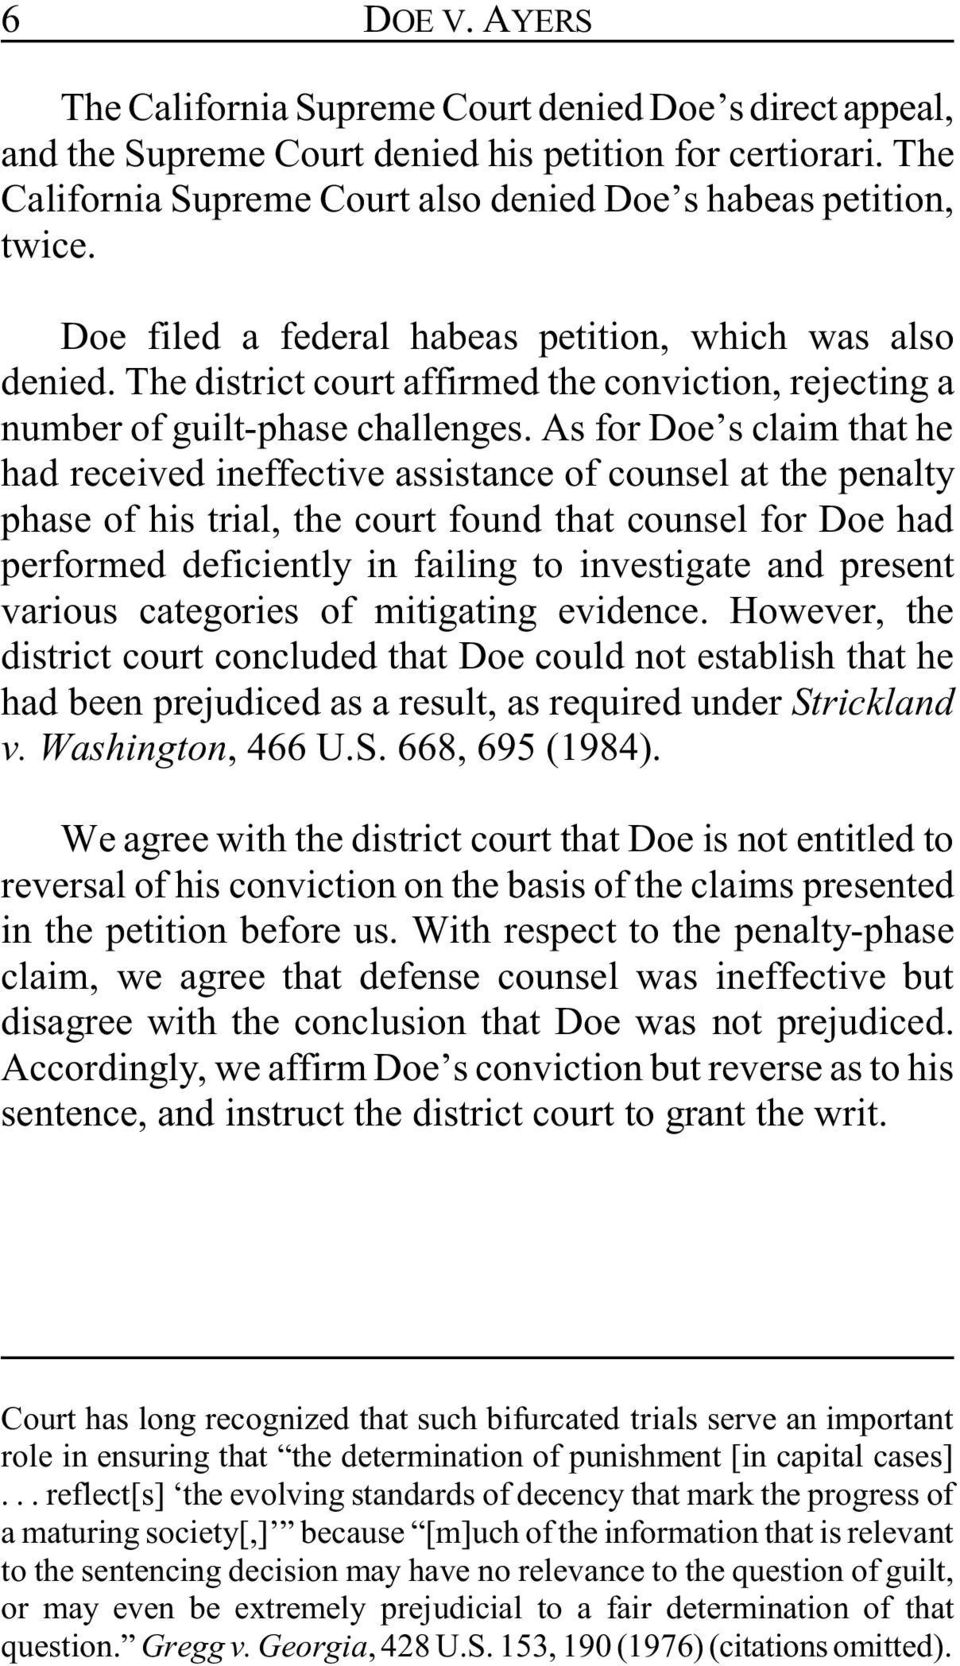 As for Doe s claim that he had received ineffective assistance of counsel at the penalty phase of his trial, the court found that counsel for Doe had performed deficiently in failing to investigate